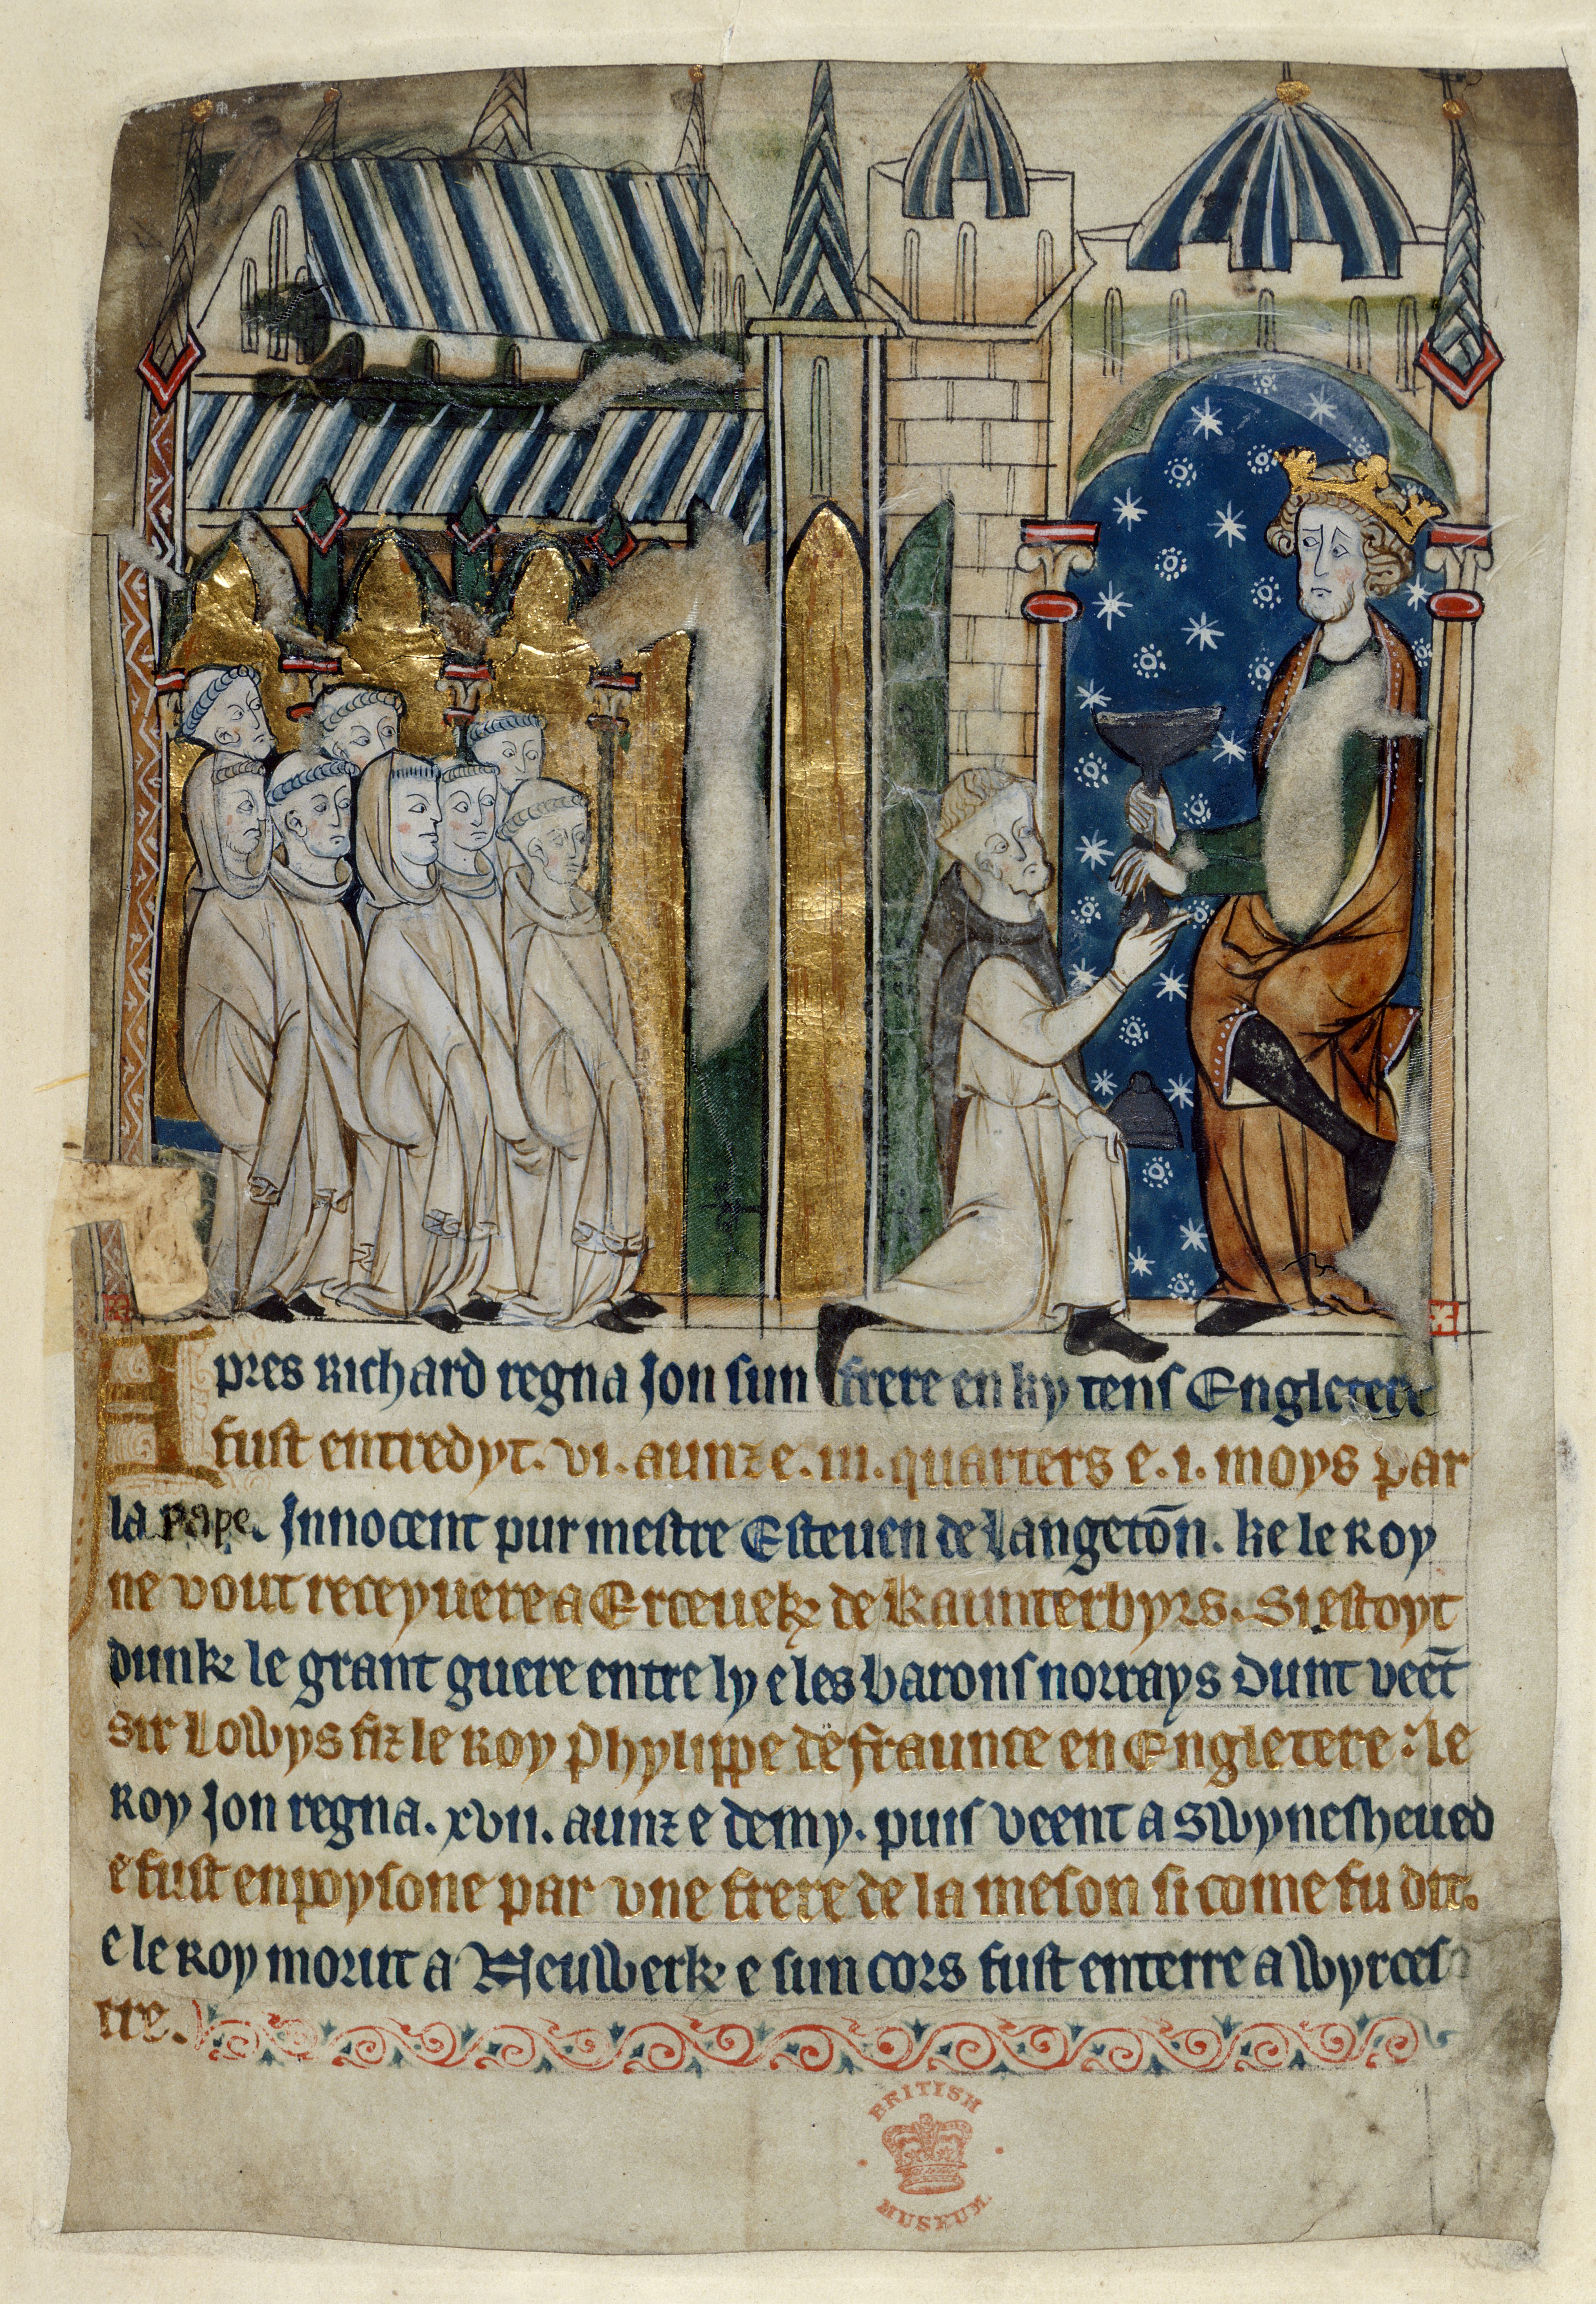 Miniature of the poisoning of King John, from a verse chronicle, C13, on display in Magna Carta: Law, Liberty, Legacy. Photography © British Library